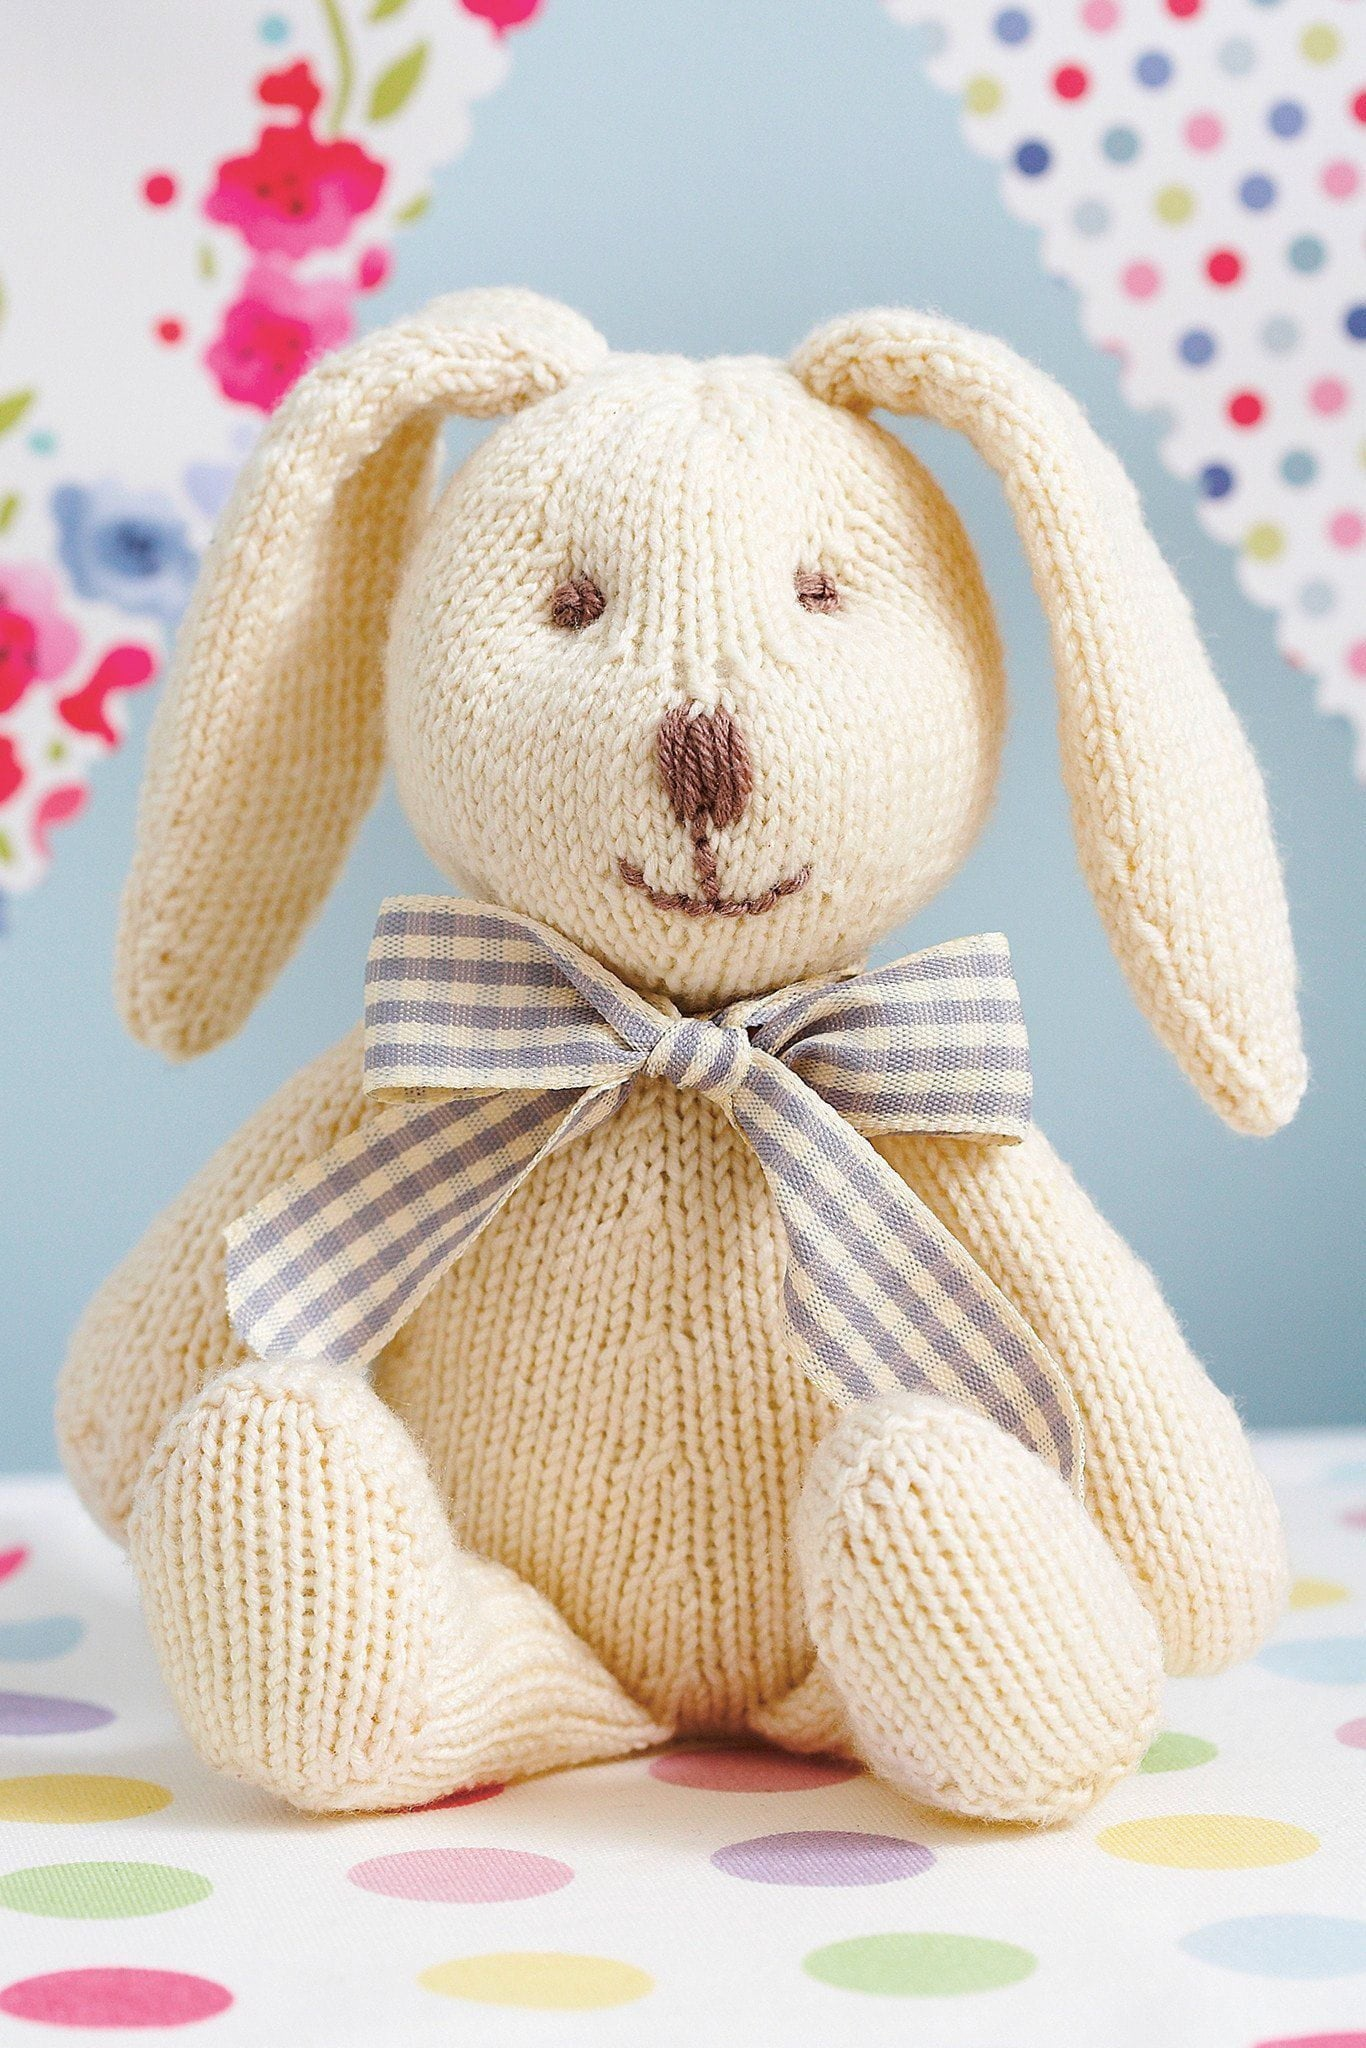 Rabbit knitting pattern the knitting network rabbit knitting pattern dt1010fo